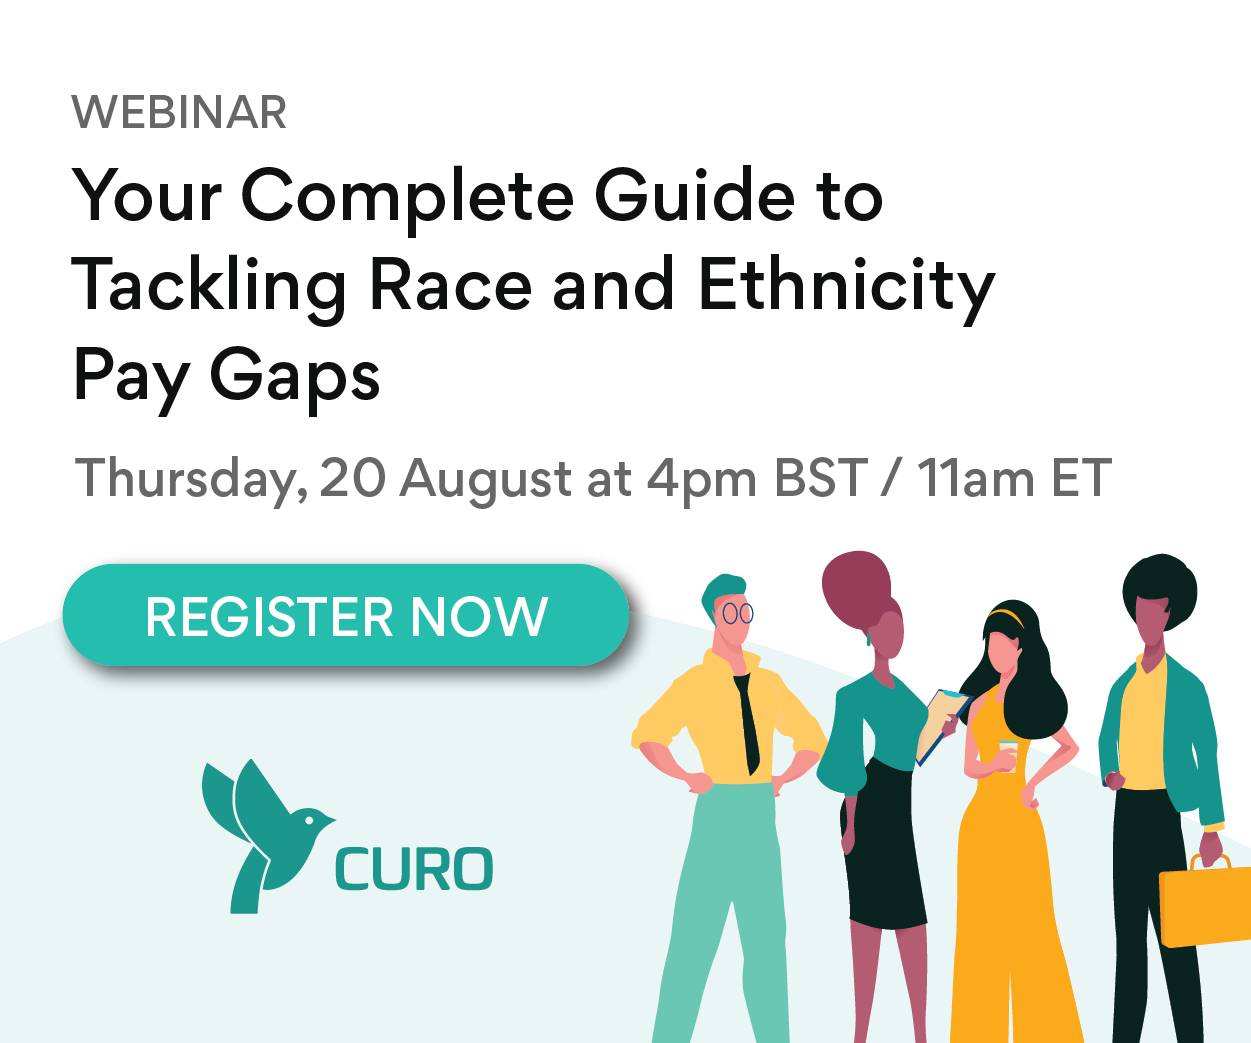 Your Complete Guide to Tackling Race and Ethnicity Pay Gaps